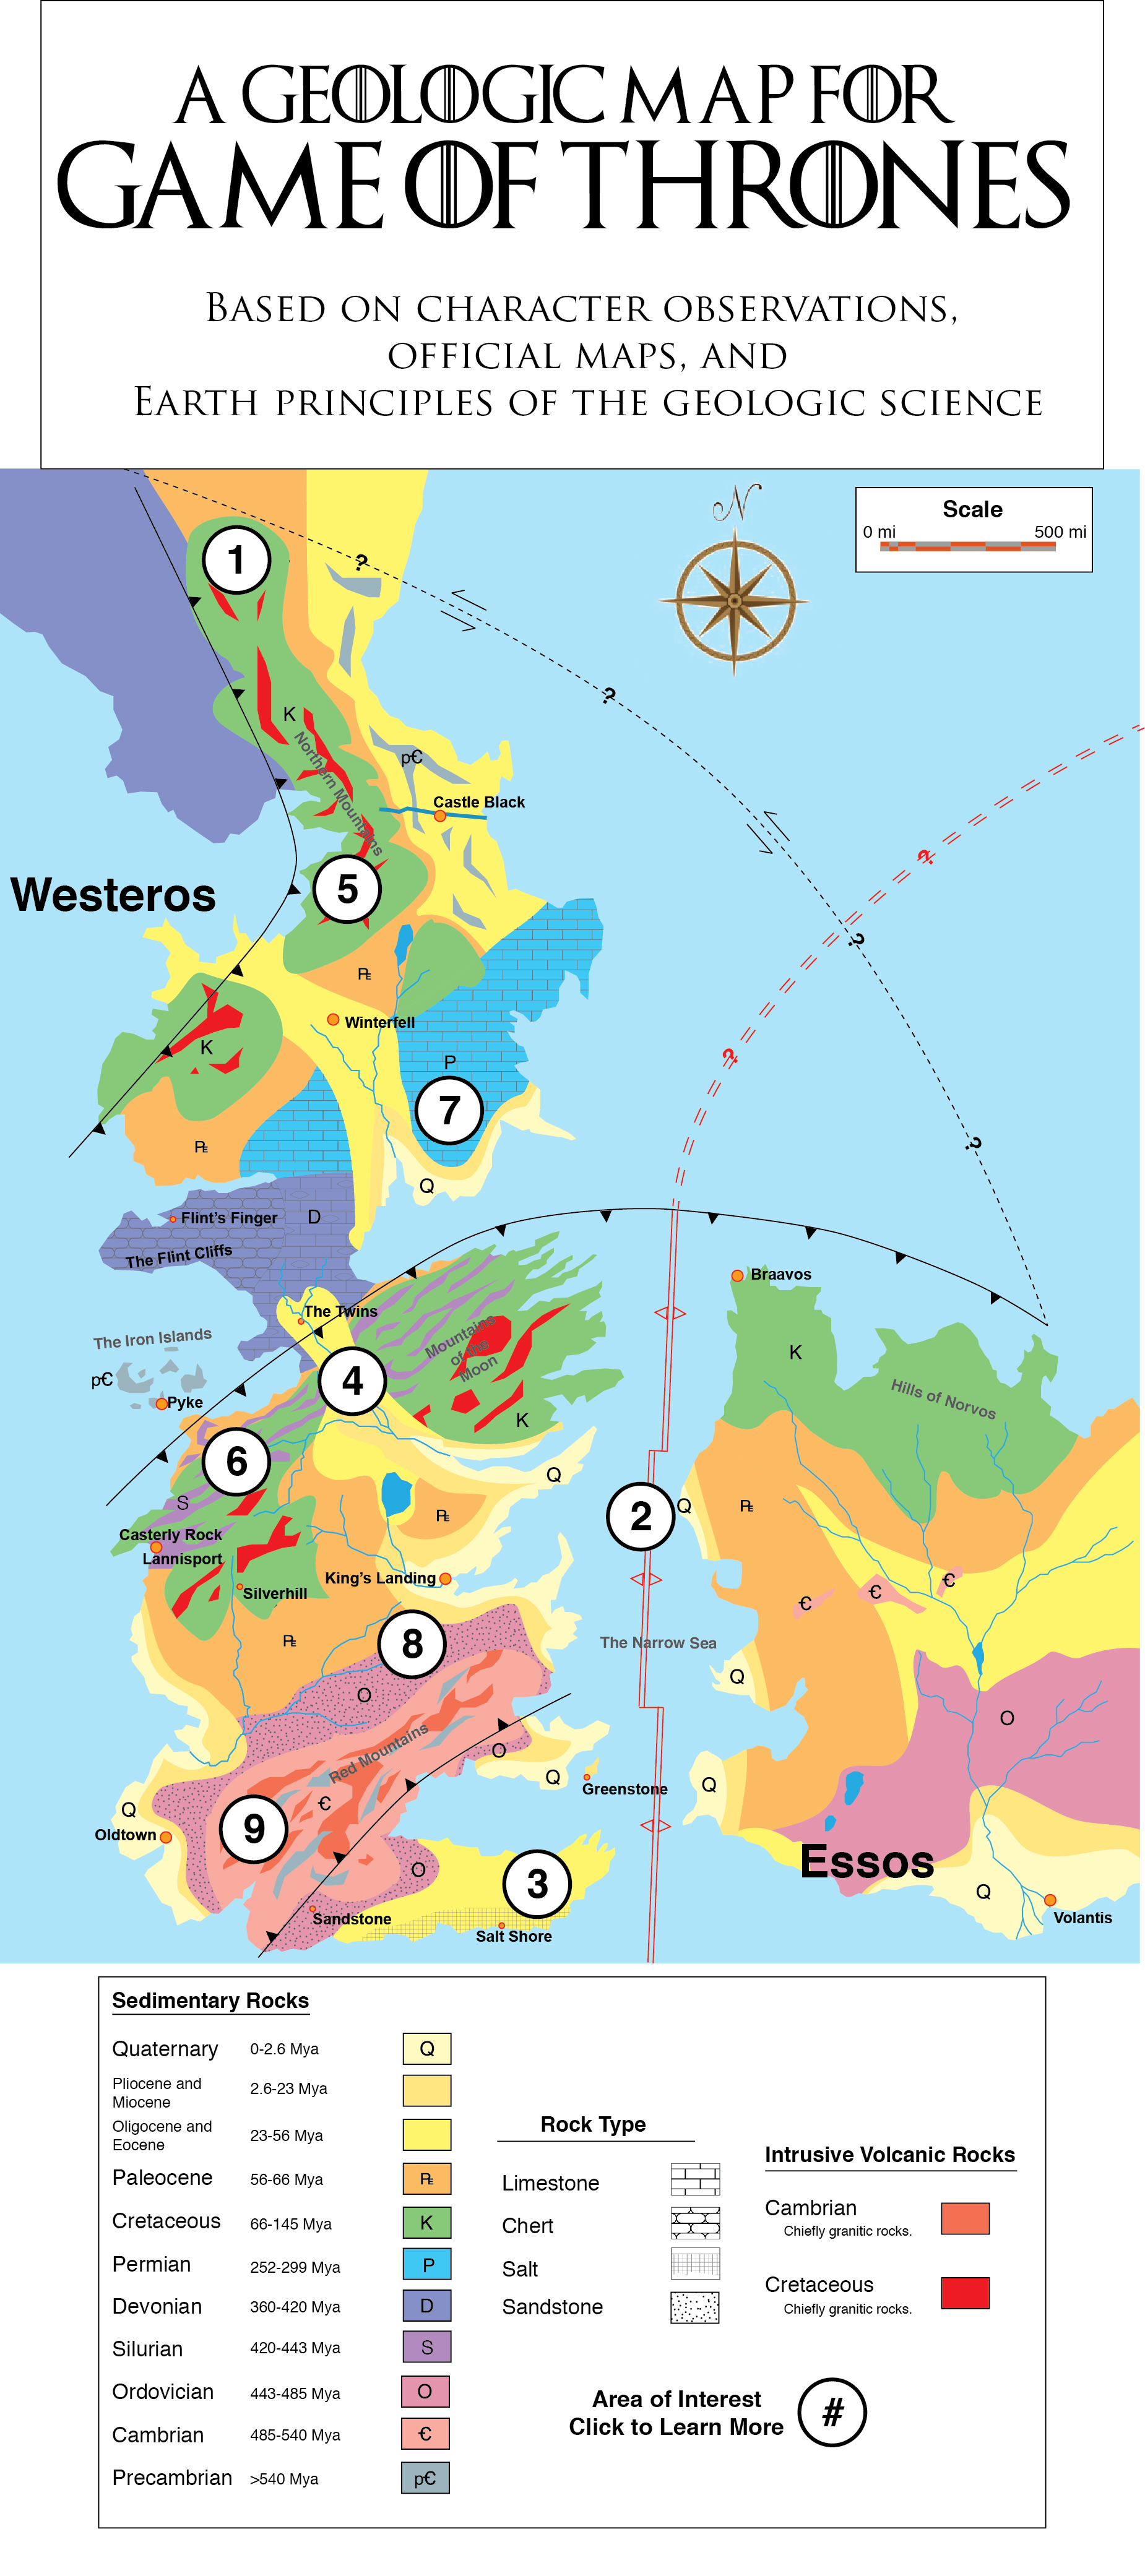 Mapa geológico de Game of Thrones. Créditos: Generation Anthropocene.